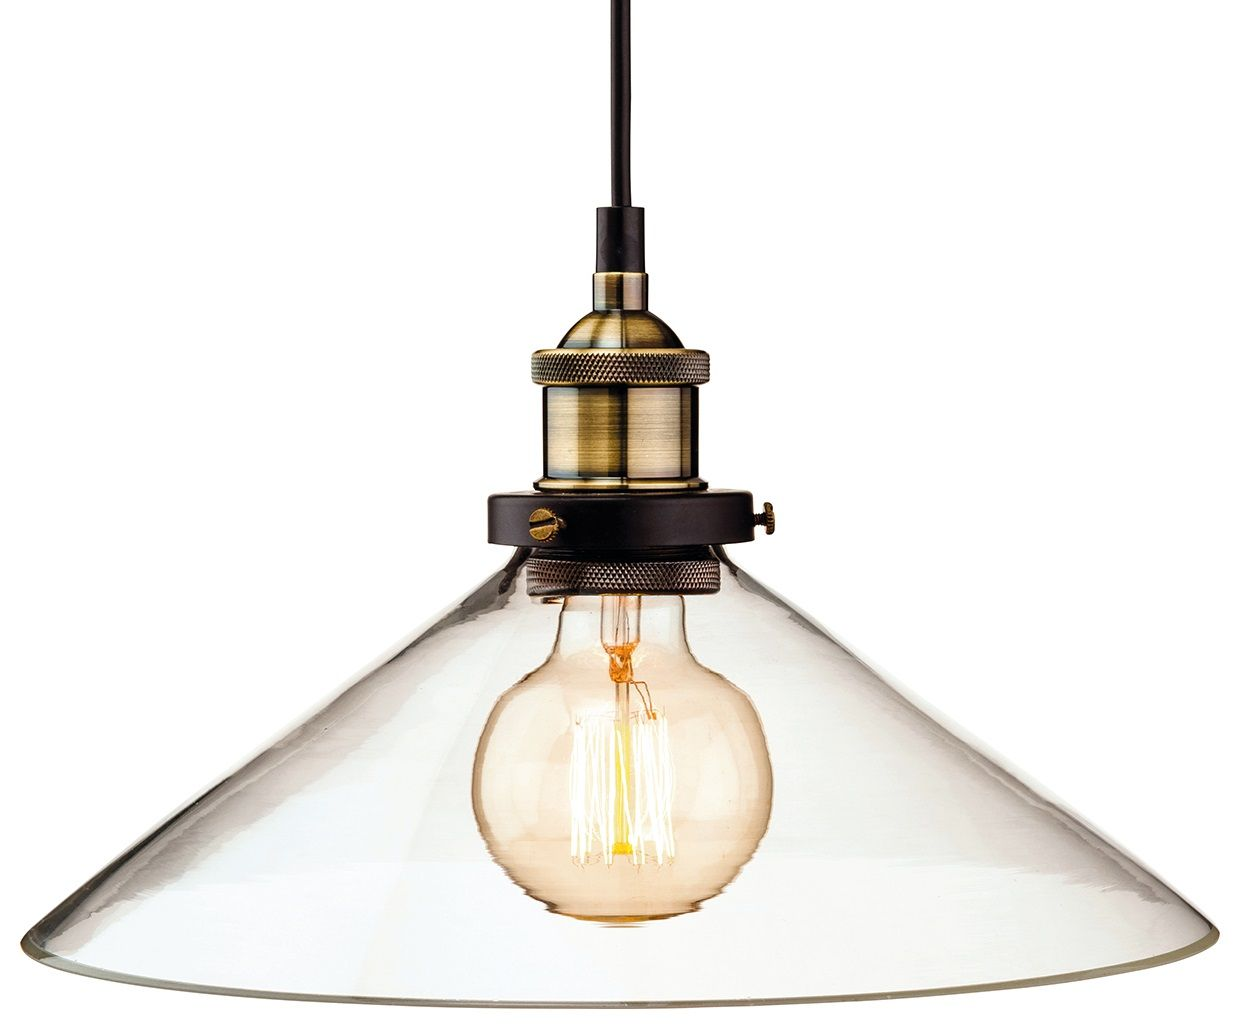 Light Pendants Firstlight Empire 3473 Single Light Pendant 3473ab